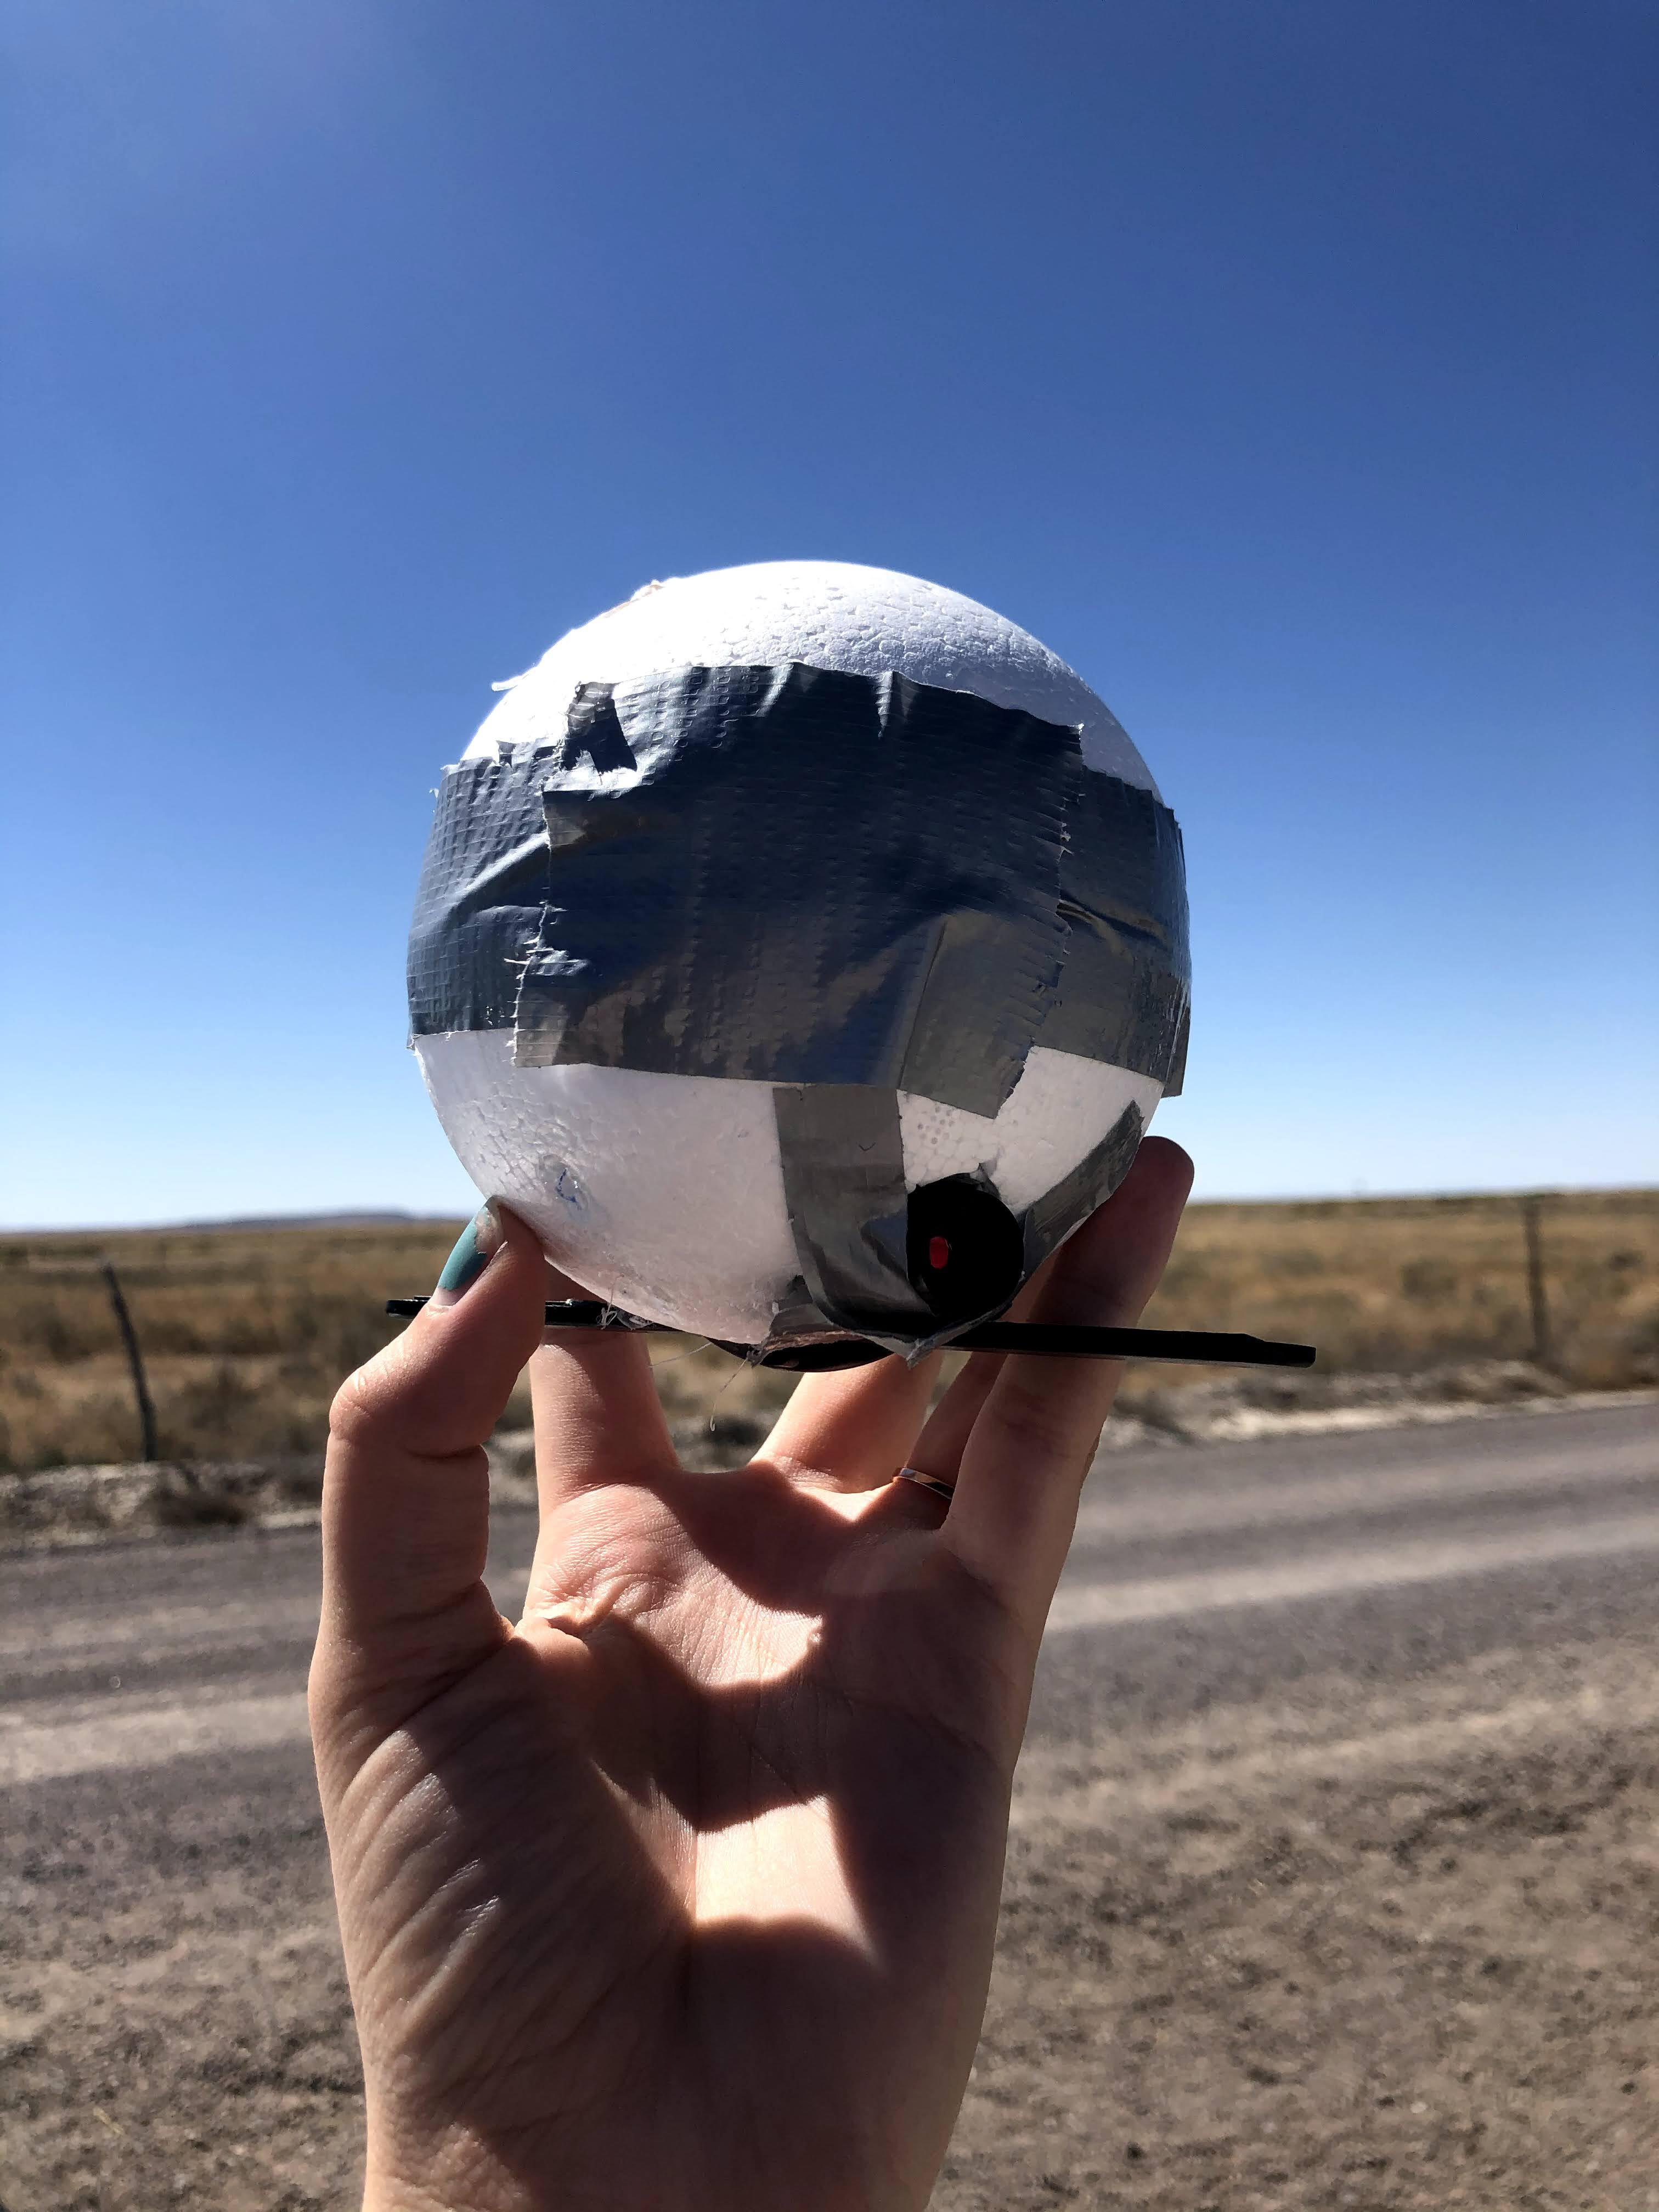 Project, styrofoam ball with Arduino hanging out